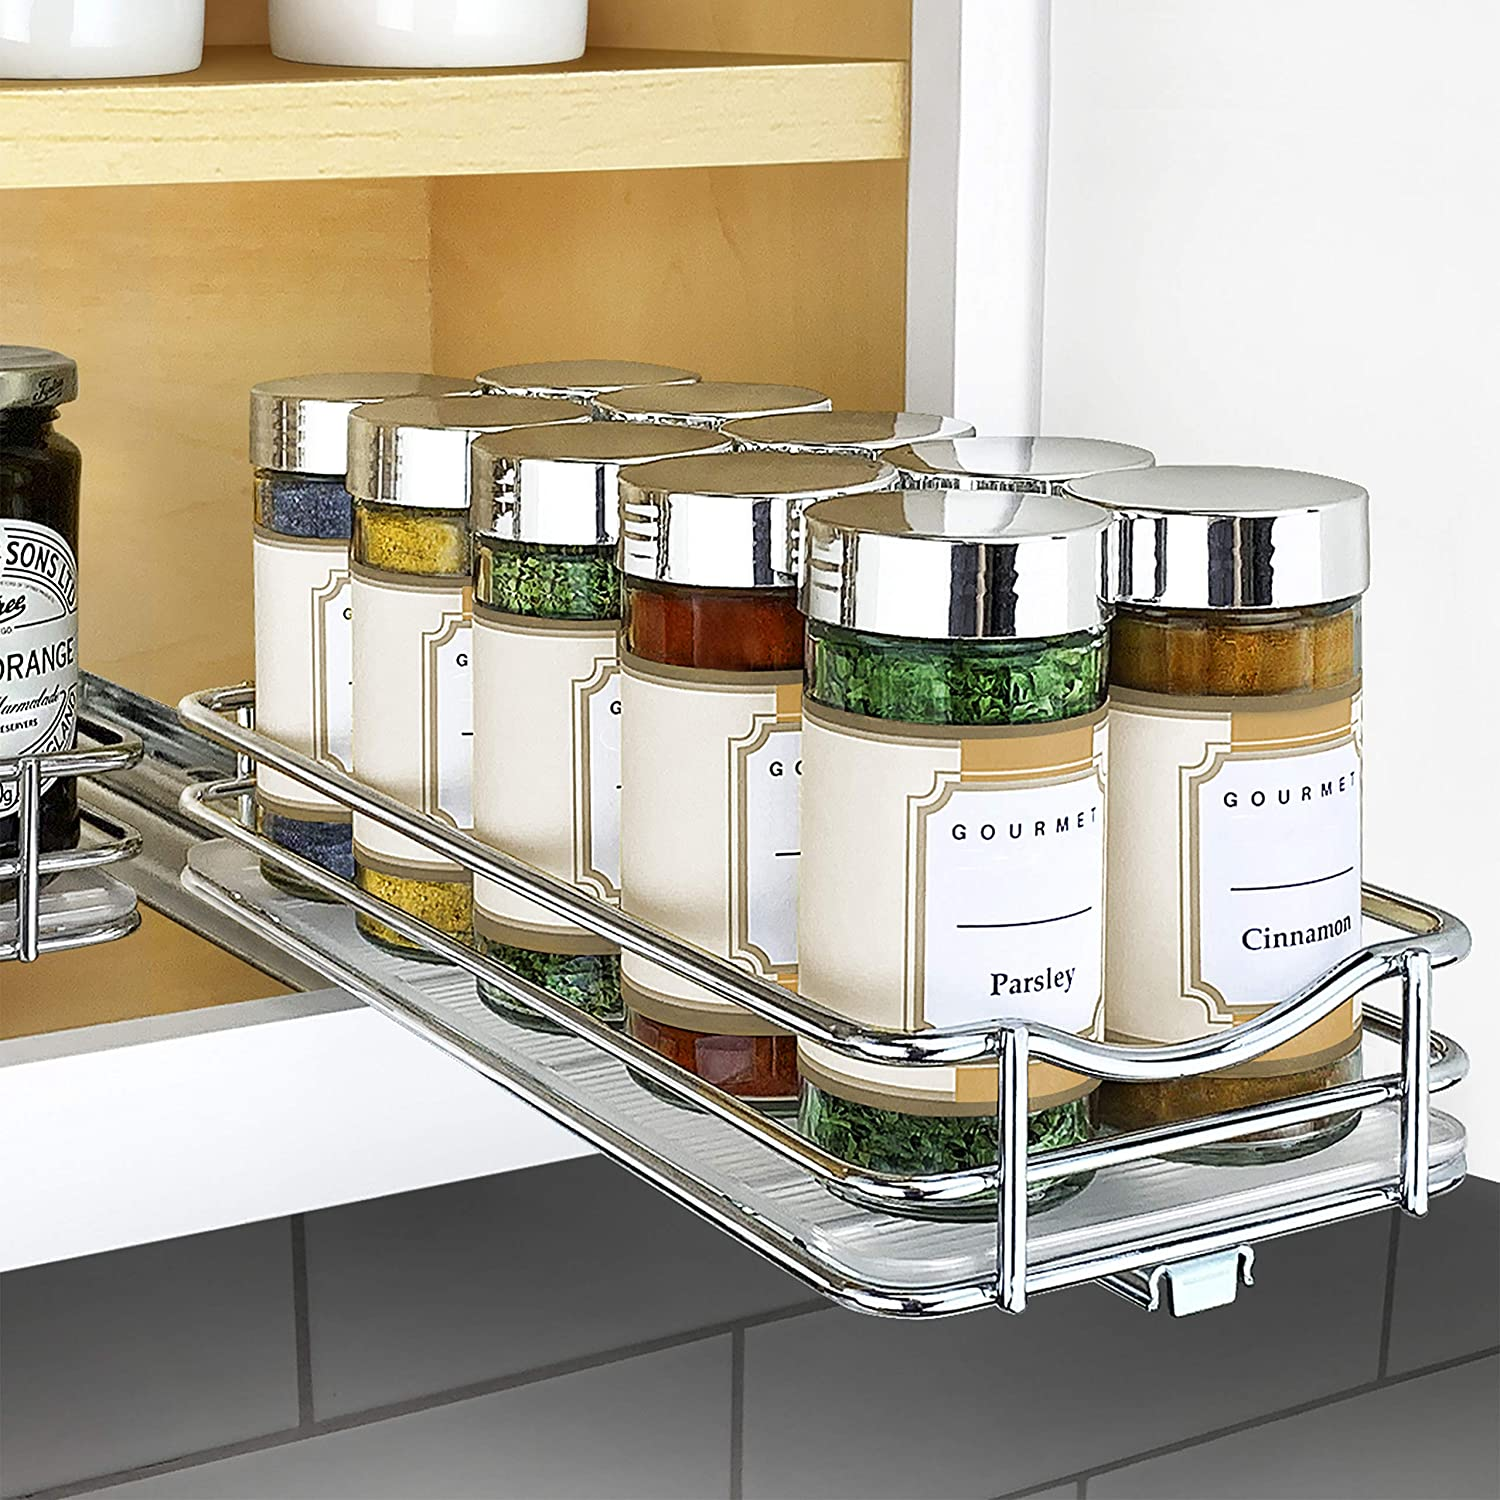 """Lynk Professional Spice Rack Upper Cabinet Organizer, 4-1/4"""" Single Slide Out, Chrome: Kitchen & Dining"""